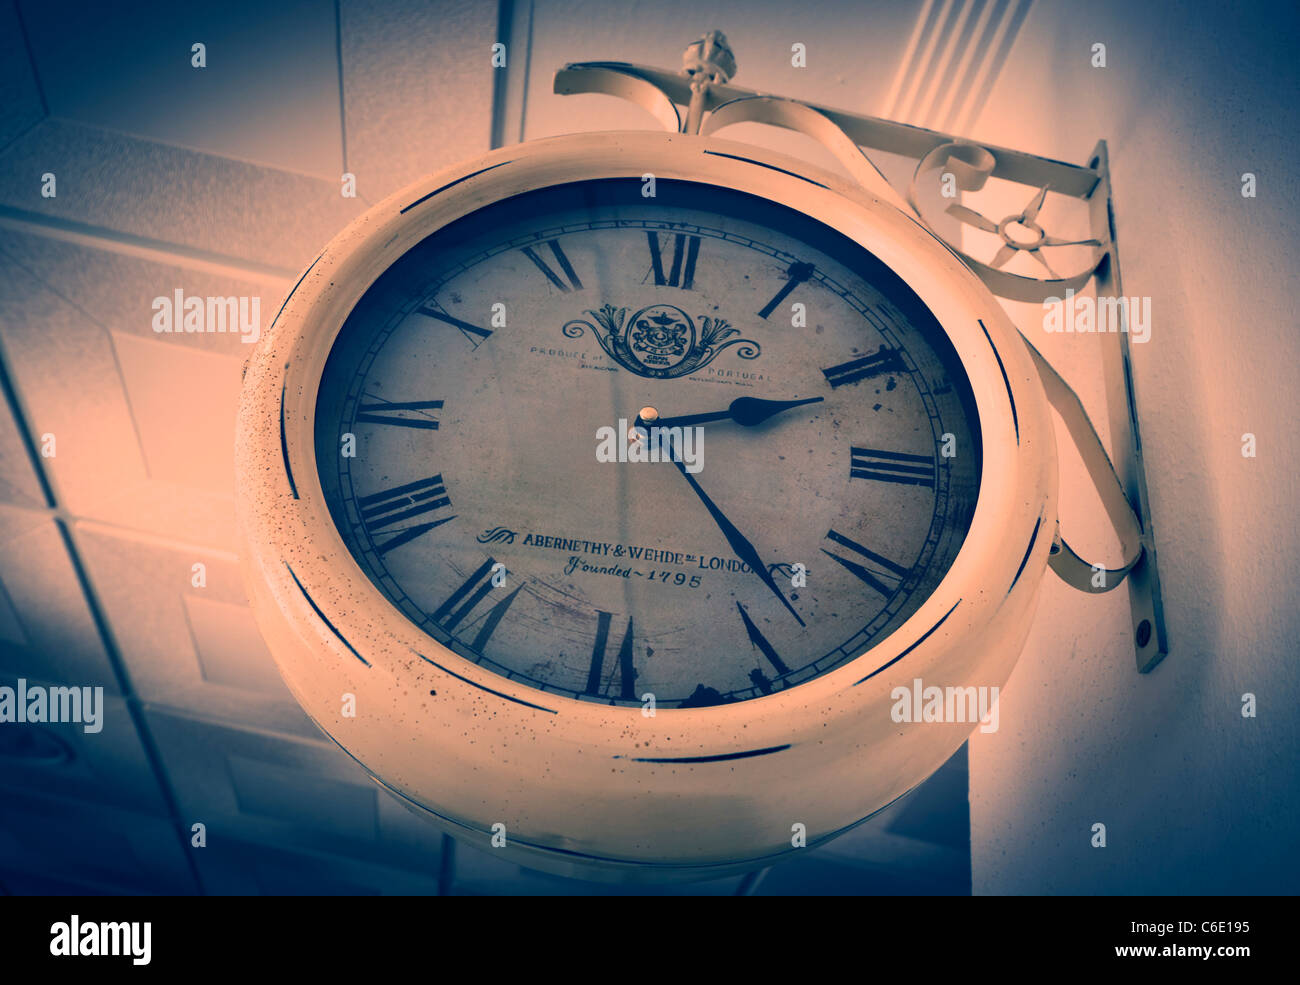 Old clock with Roman numerals on wall. - Stock Image